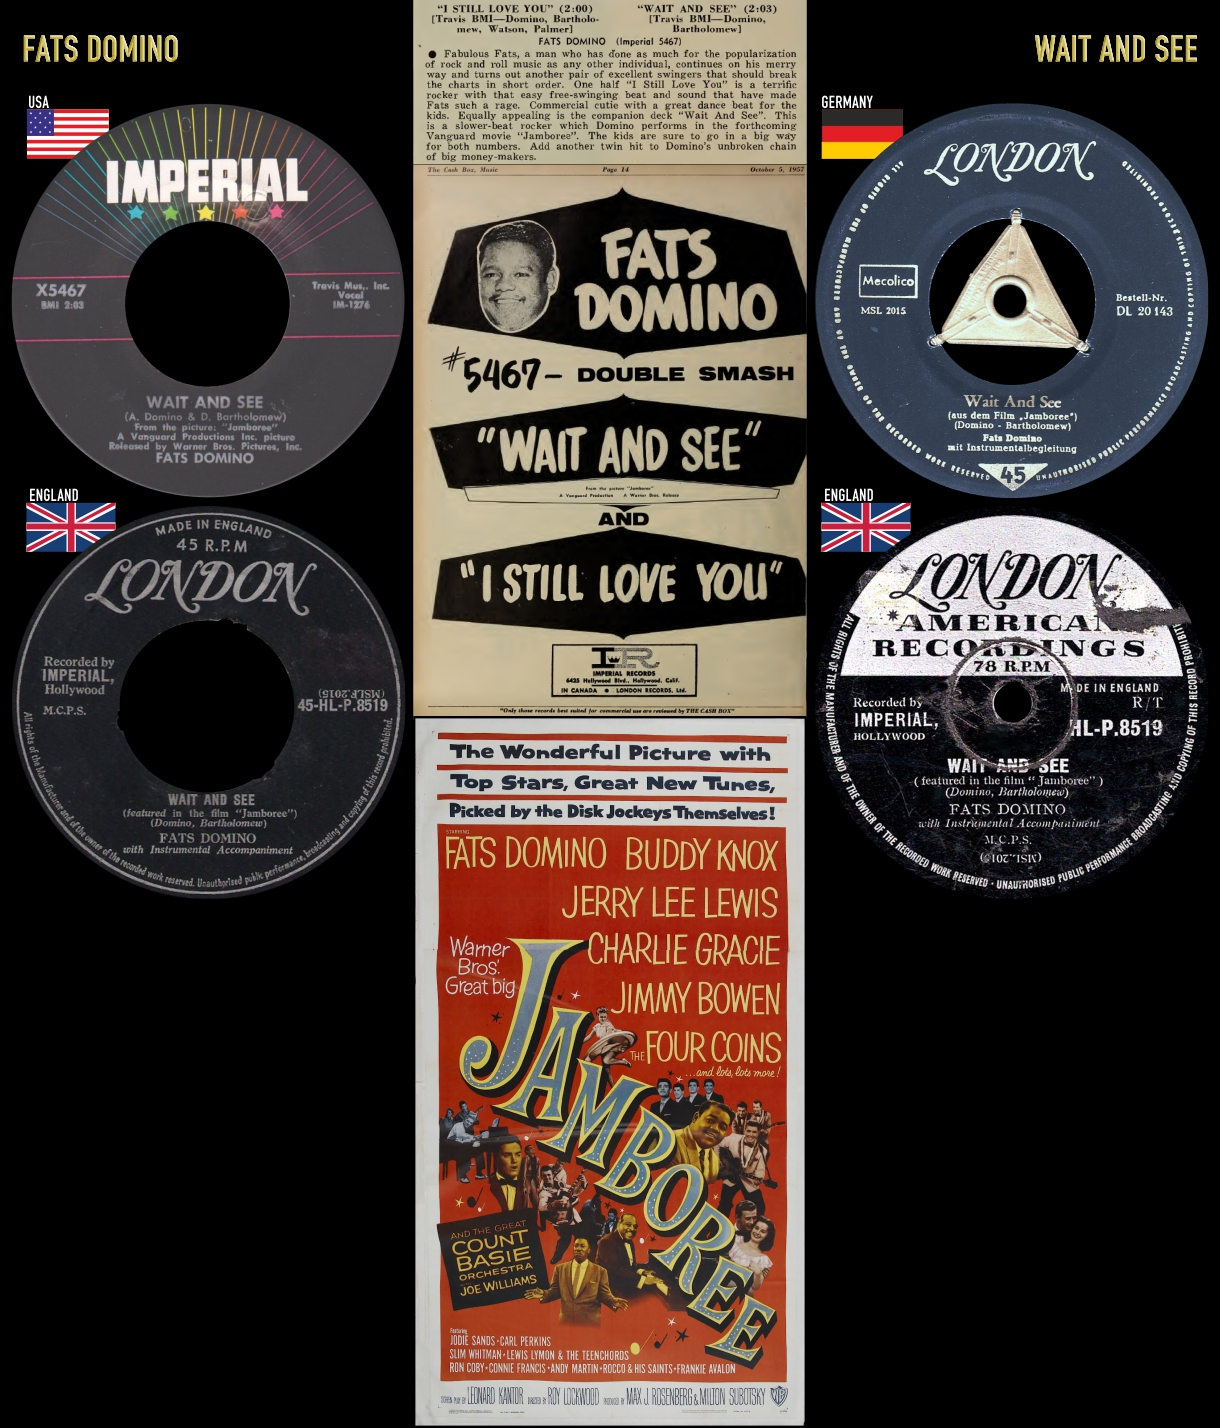 571019_Fats Domino_Wait And See